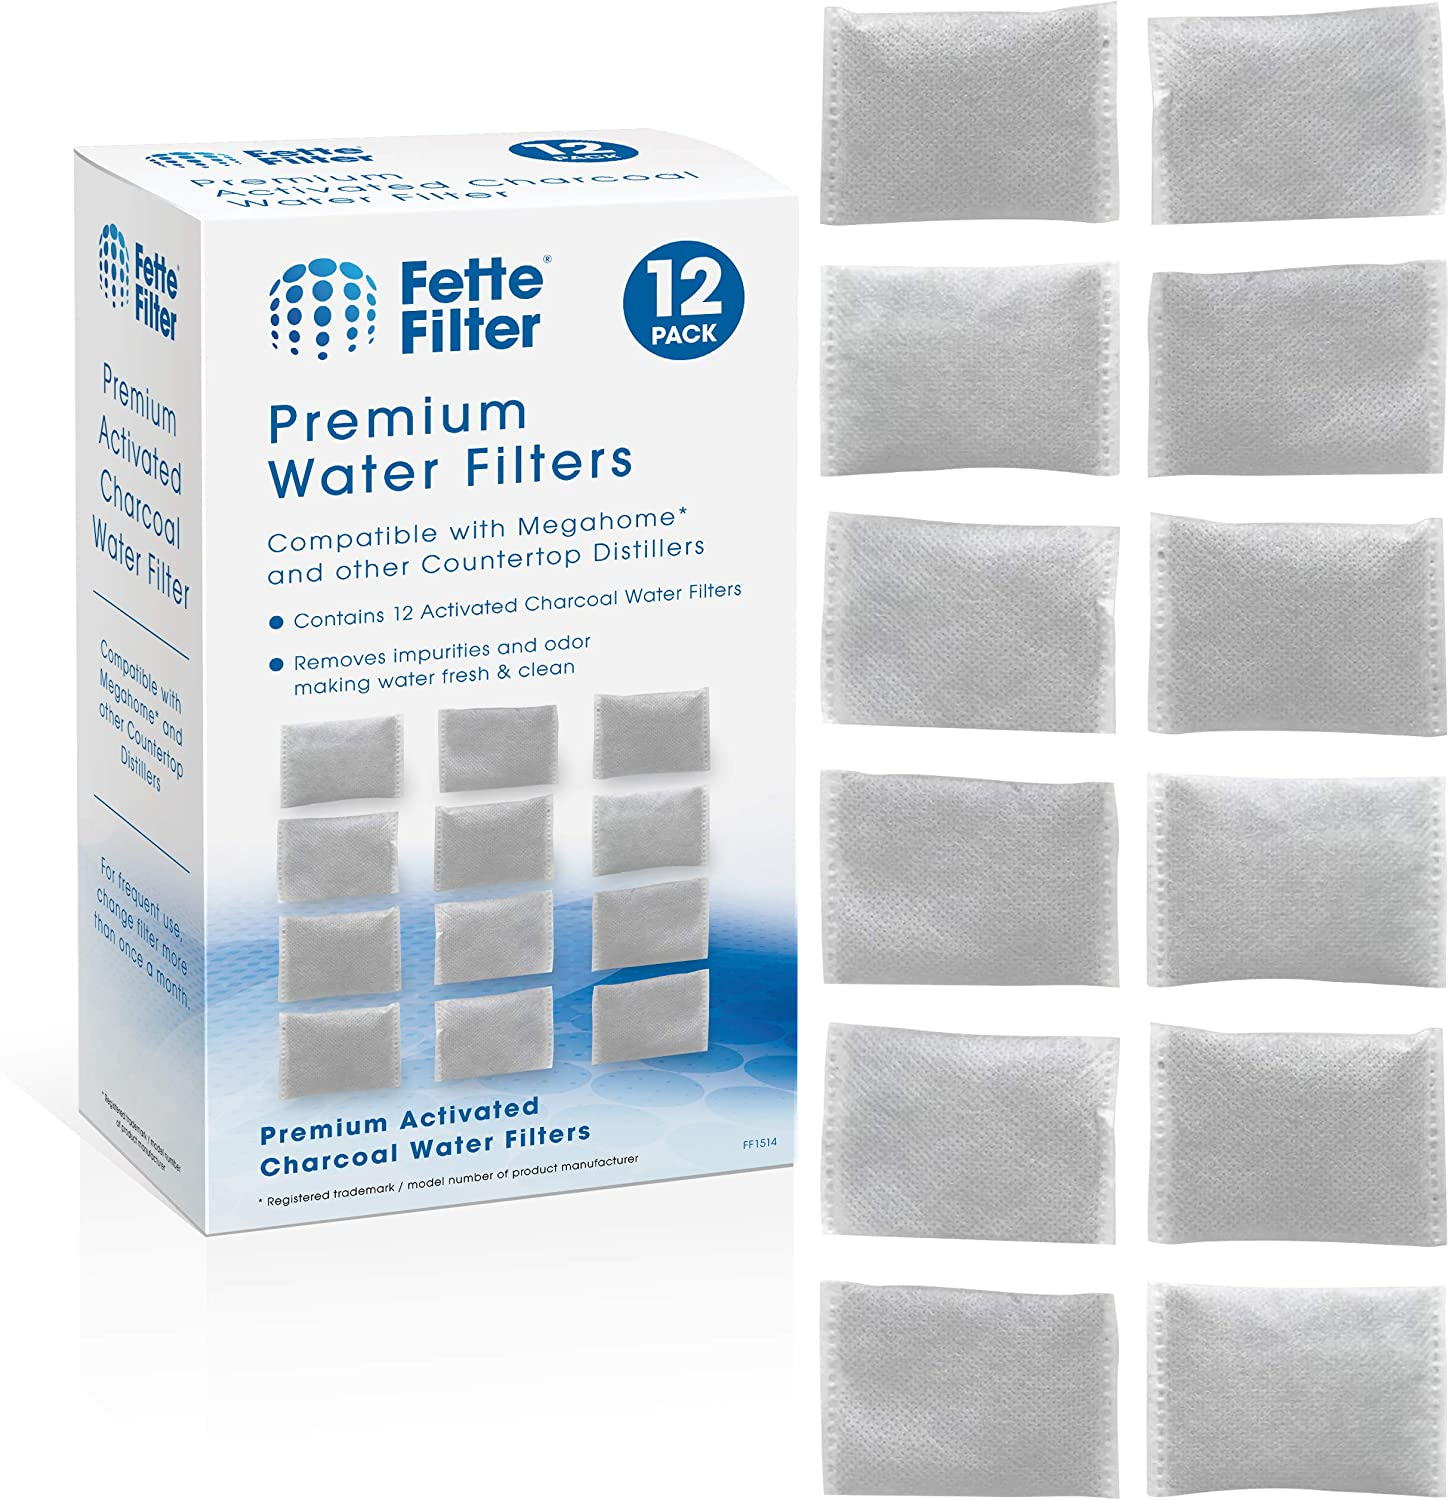 Fette Filter - Countertop Distillers Water Filters Compatible with Megahome and Other Counter Top Water Distiller Models. Pack of 12